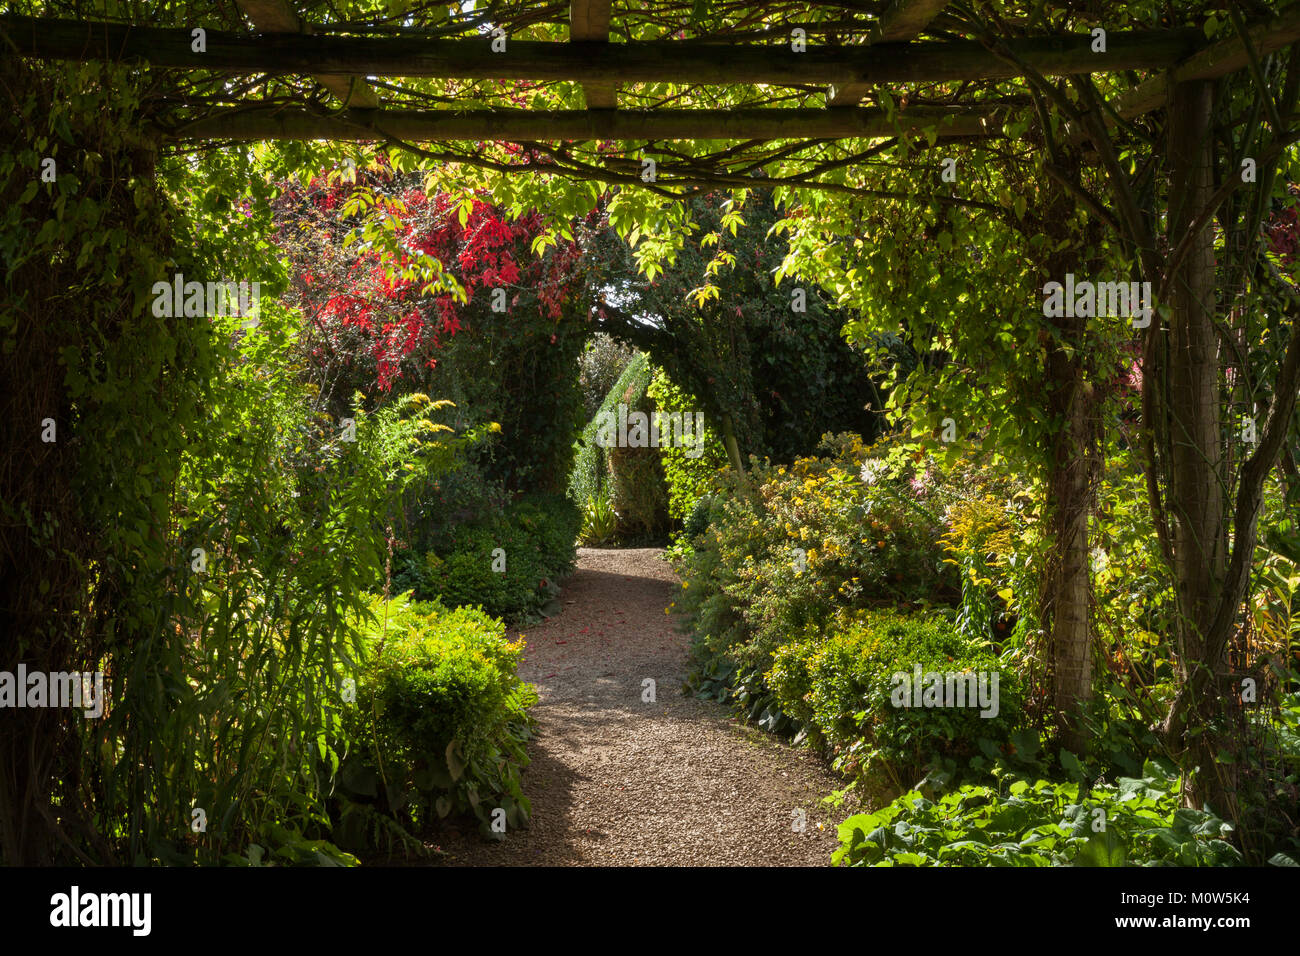 The colourful herbaceous borders in late summer seen from beneath the pergola within the walled garden of Rousham House, Oxfordshire, England. Stock Photo